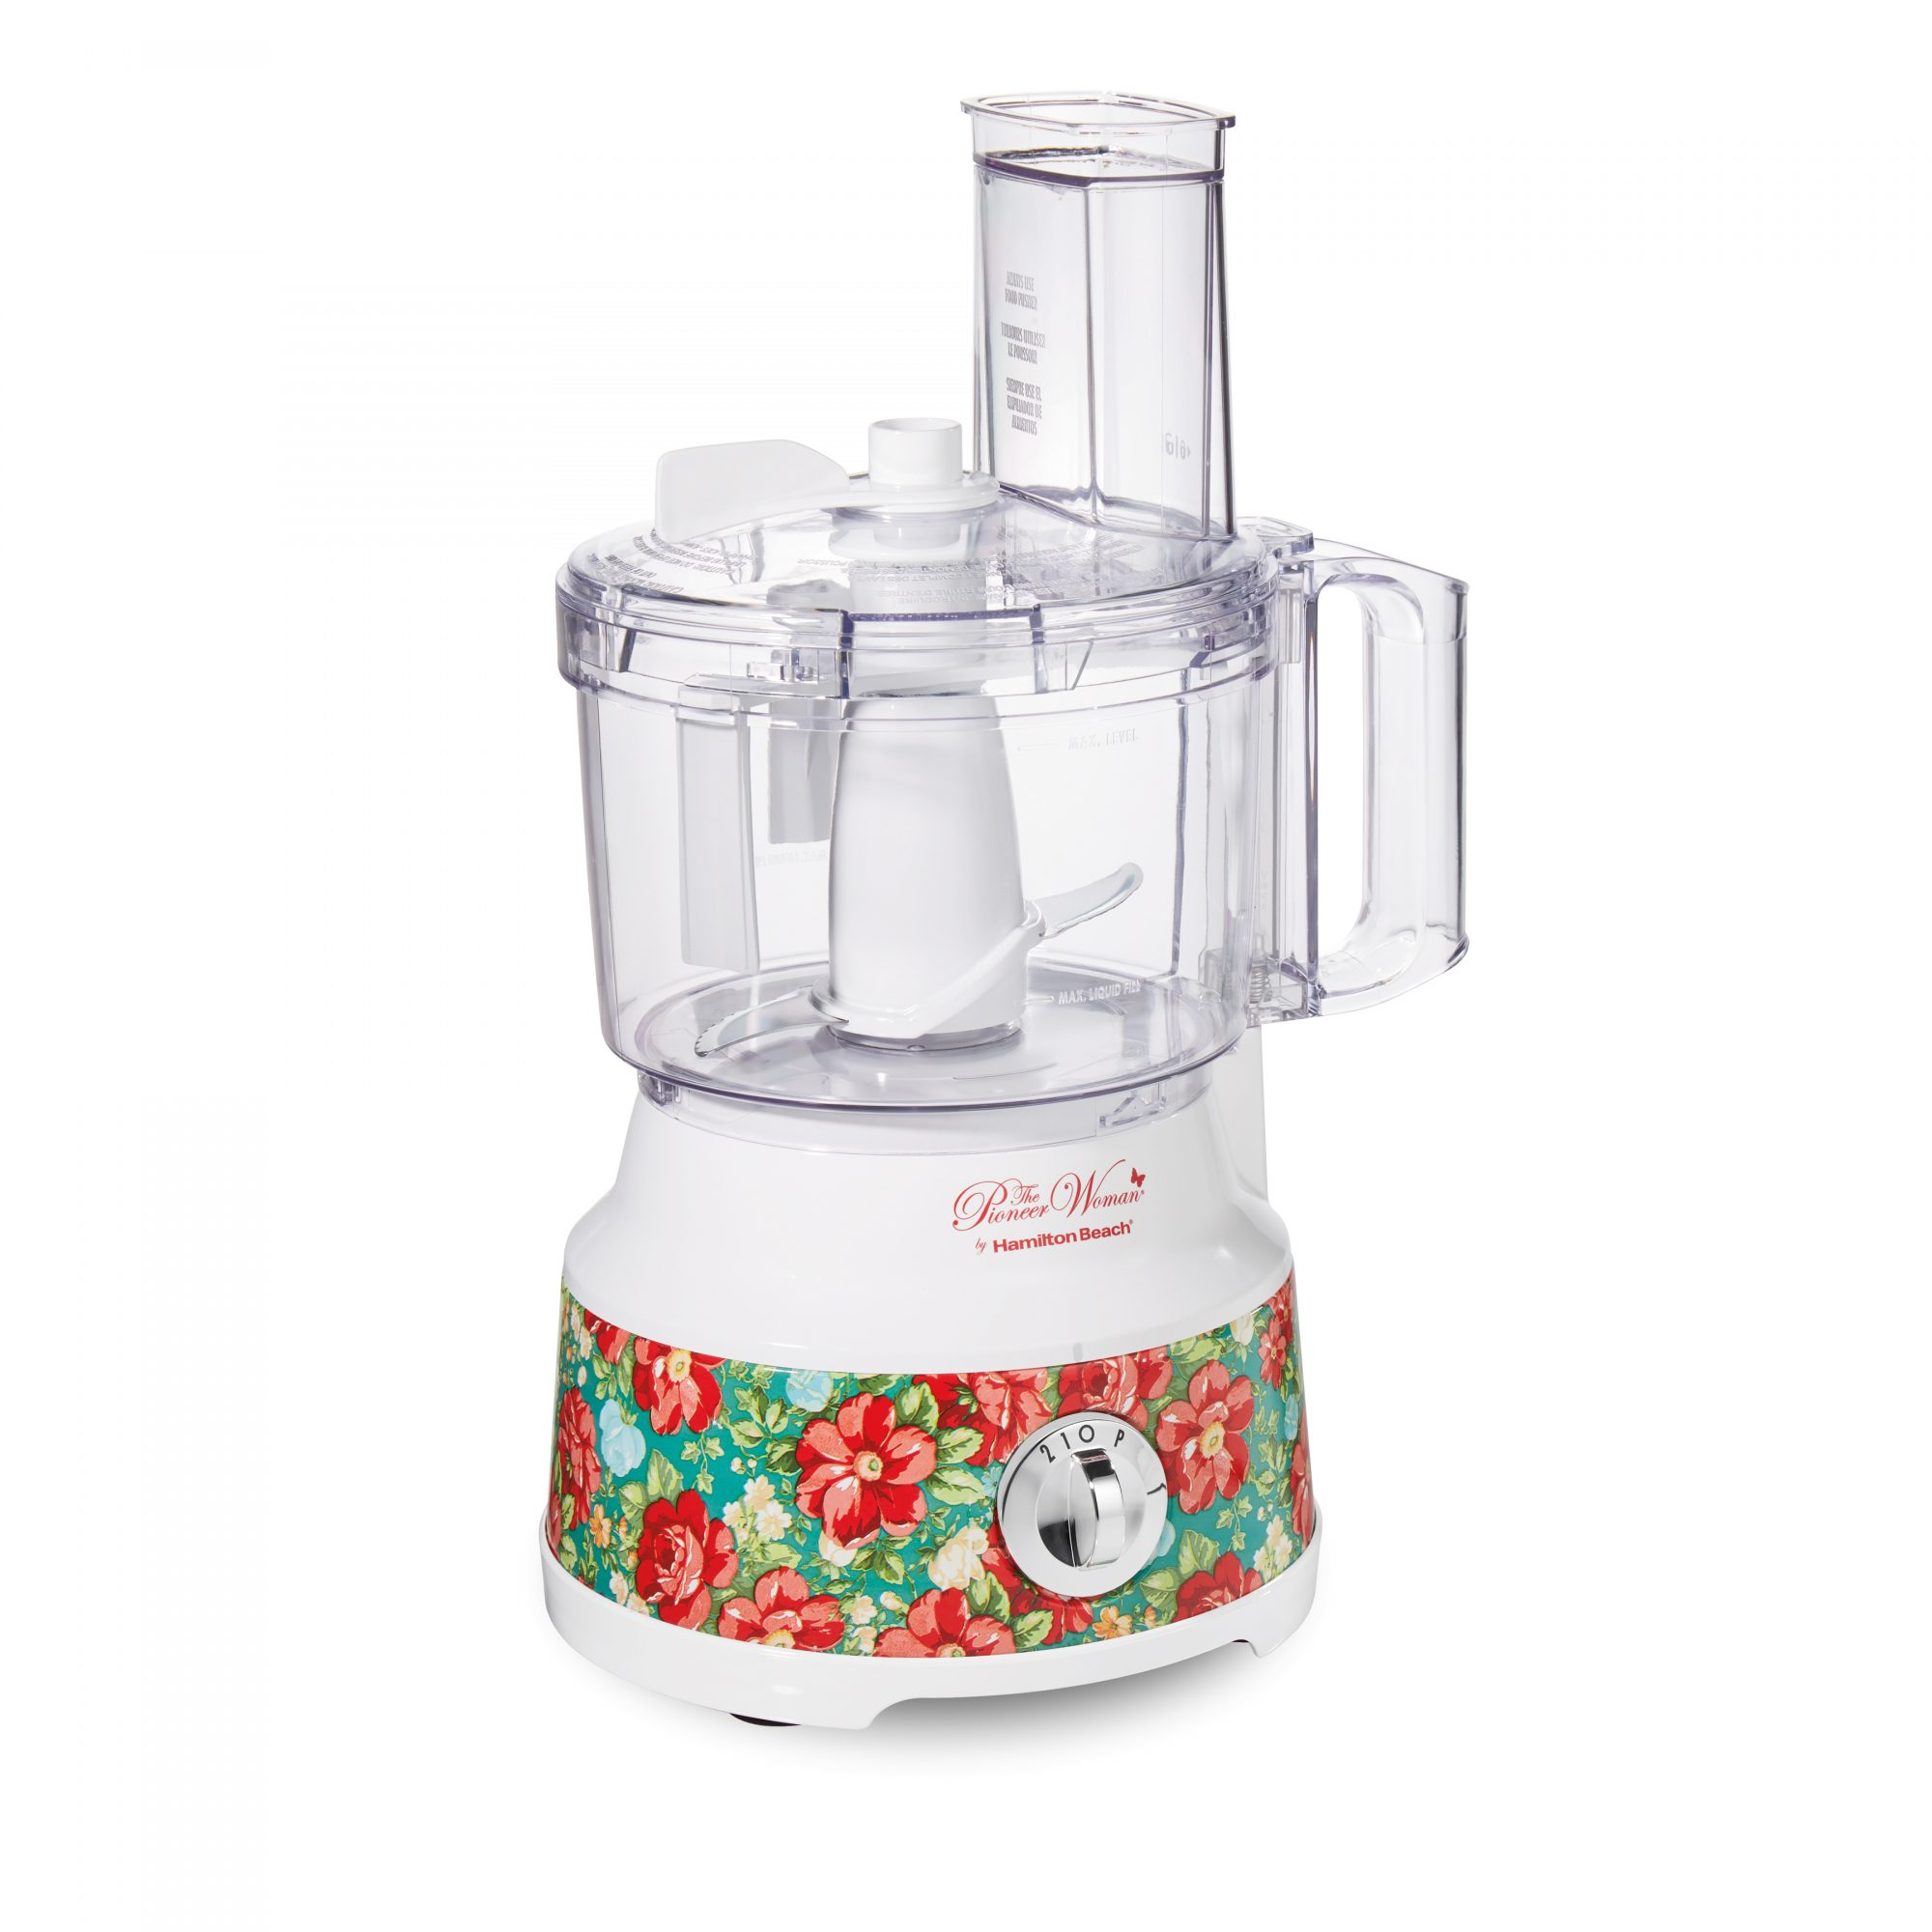 This button opens a dialog that displays additional images for this product with the option to zoom in or out. Pioneer Woman Vintage Floral 10 Cup Food Processor with Bowl Scraper by Hamilton Beach, 70731 Pioneer Woman Vintage Floral 10 Cup Food Processor with Bowl Scraper by Hamilton Beach, 70731 Pioneer Woman Vintage Floral 10 Cup Food Processor with Bowl Scraper by Hamilton Beach, 70731 Pioneer Woman Vintage Floral 10 Cup Food Processor with Bowl Scraper by Hamilton Beach, 70731 Pioneer Woman Vintage Floral 10 Cup Food Processor with Bowl Scraper by Hamilton Beach, 70731 Pioneer Woman Vintage Floral 10 Cup Food Processor with Bowl Scraper by Hamilton Beach, 70731 Pioneer Woman Vintage Floral 10 Cup Food Processor with Bowl Scraper by Hamilton Beach, 70731 Pioneer Woman Vintage Floral 10 Cup Food Processor with Bowl Scraper by Hamilton Beach, 70731 Report incorrect product info or prohibited items Pioneer Woman Vintage Floral 10 Cup Food Processor with Bowl Scraper by Hamilton Beach